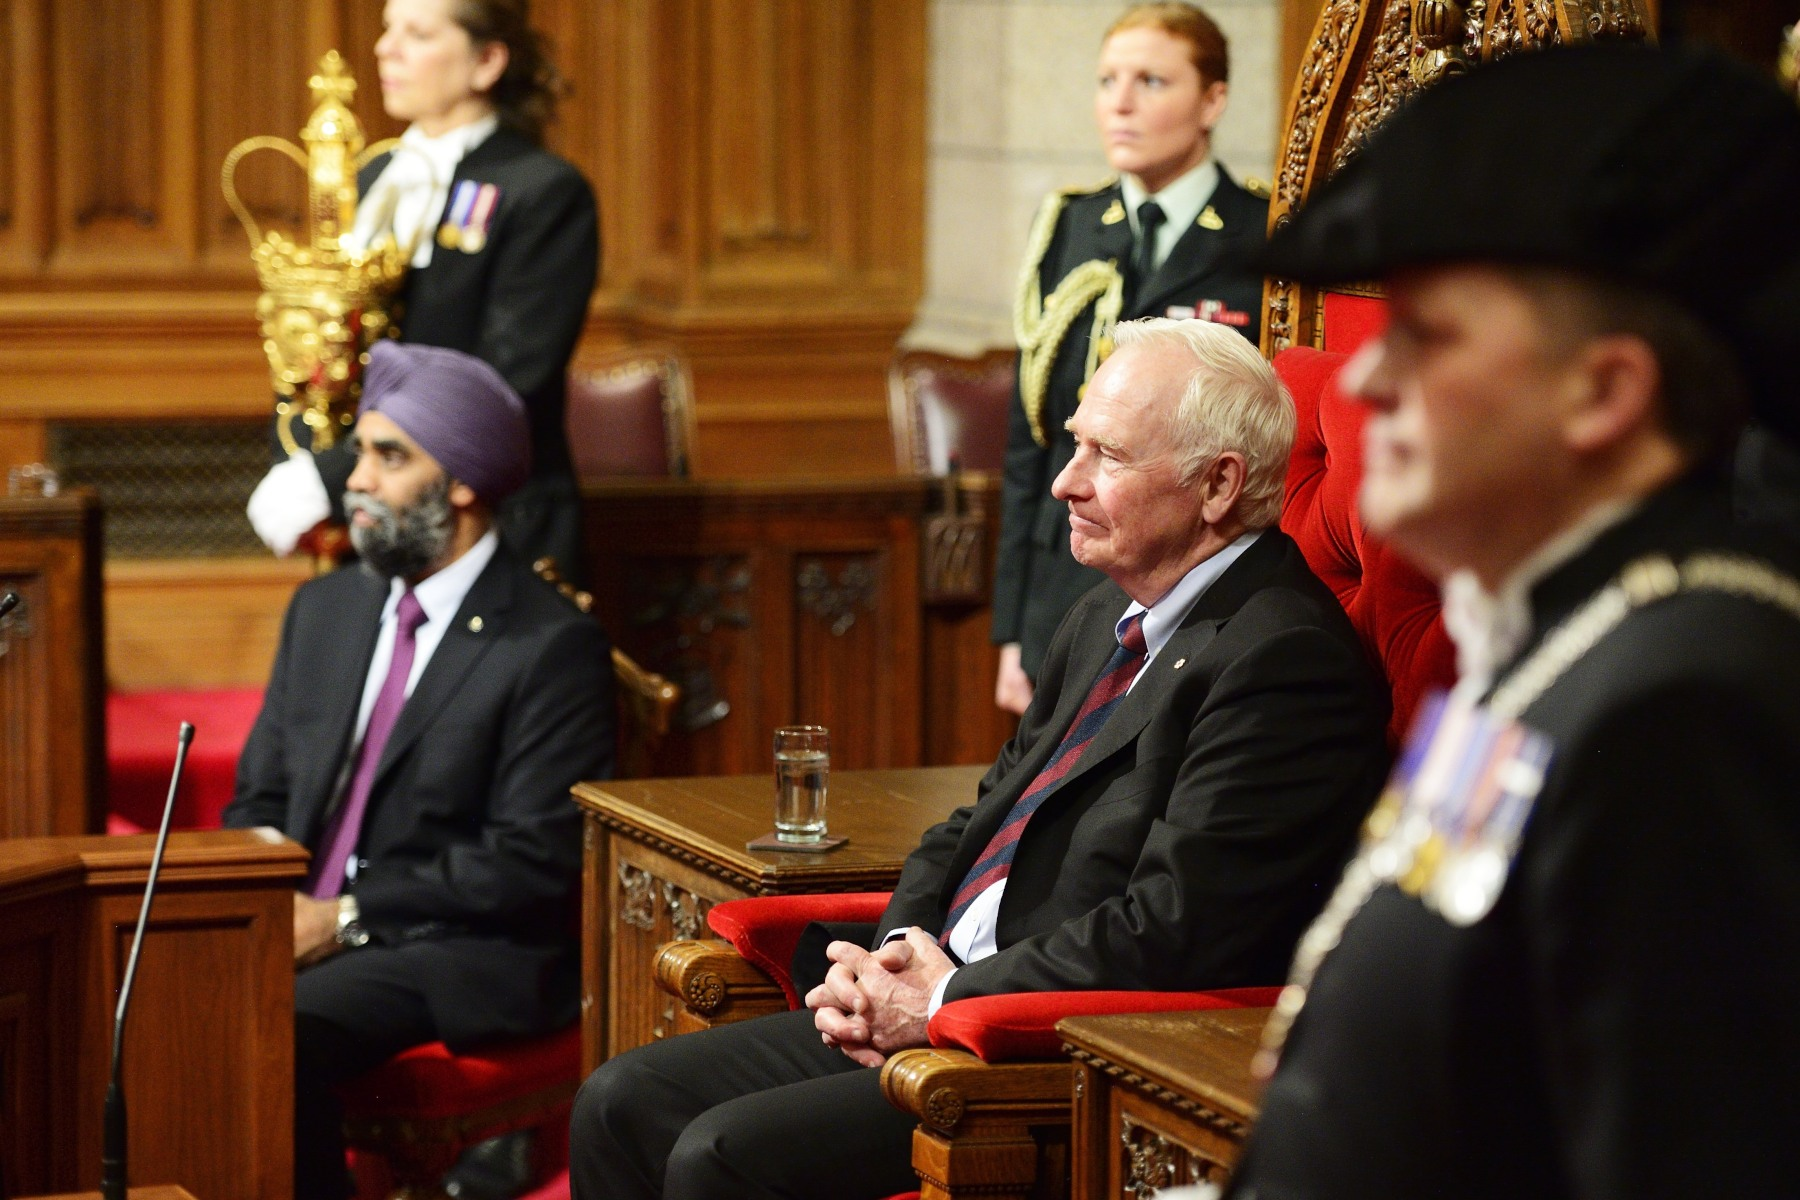 As The Queen's representative in Canada, the Governor General exercises the duties of head of State and one of them is granting royal assent to Parliament bills.